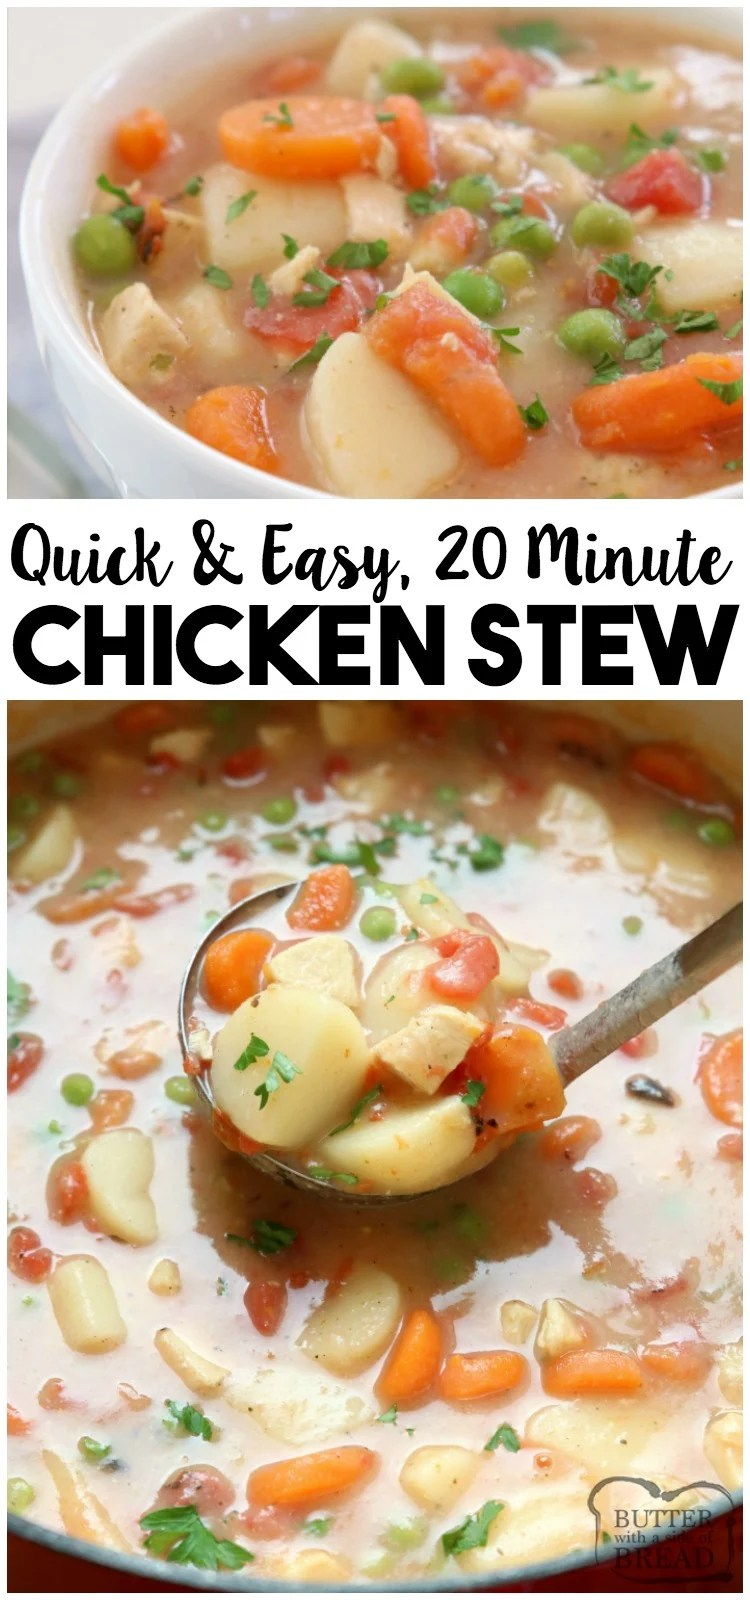 20-Minute Chicken Stew recipe, perfect for busy nights! Hearty stew with tender chicken & vegetables that comes together fast and tastes wonderful. #chicken #stew #recipe #dinner #chickenstew #chickenrecipe #chickendinner #food #comfortfood from BUTTER WITH A SIDE OF BREAD